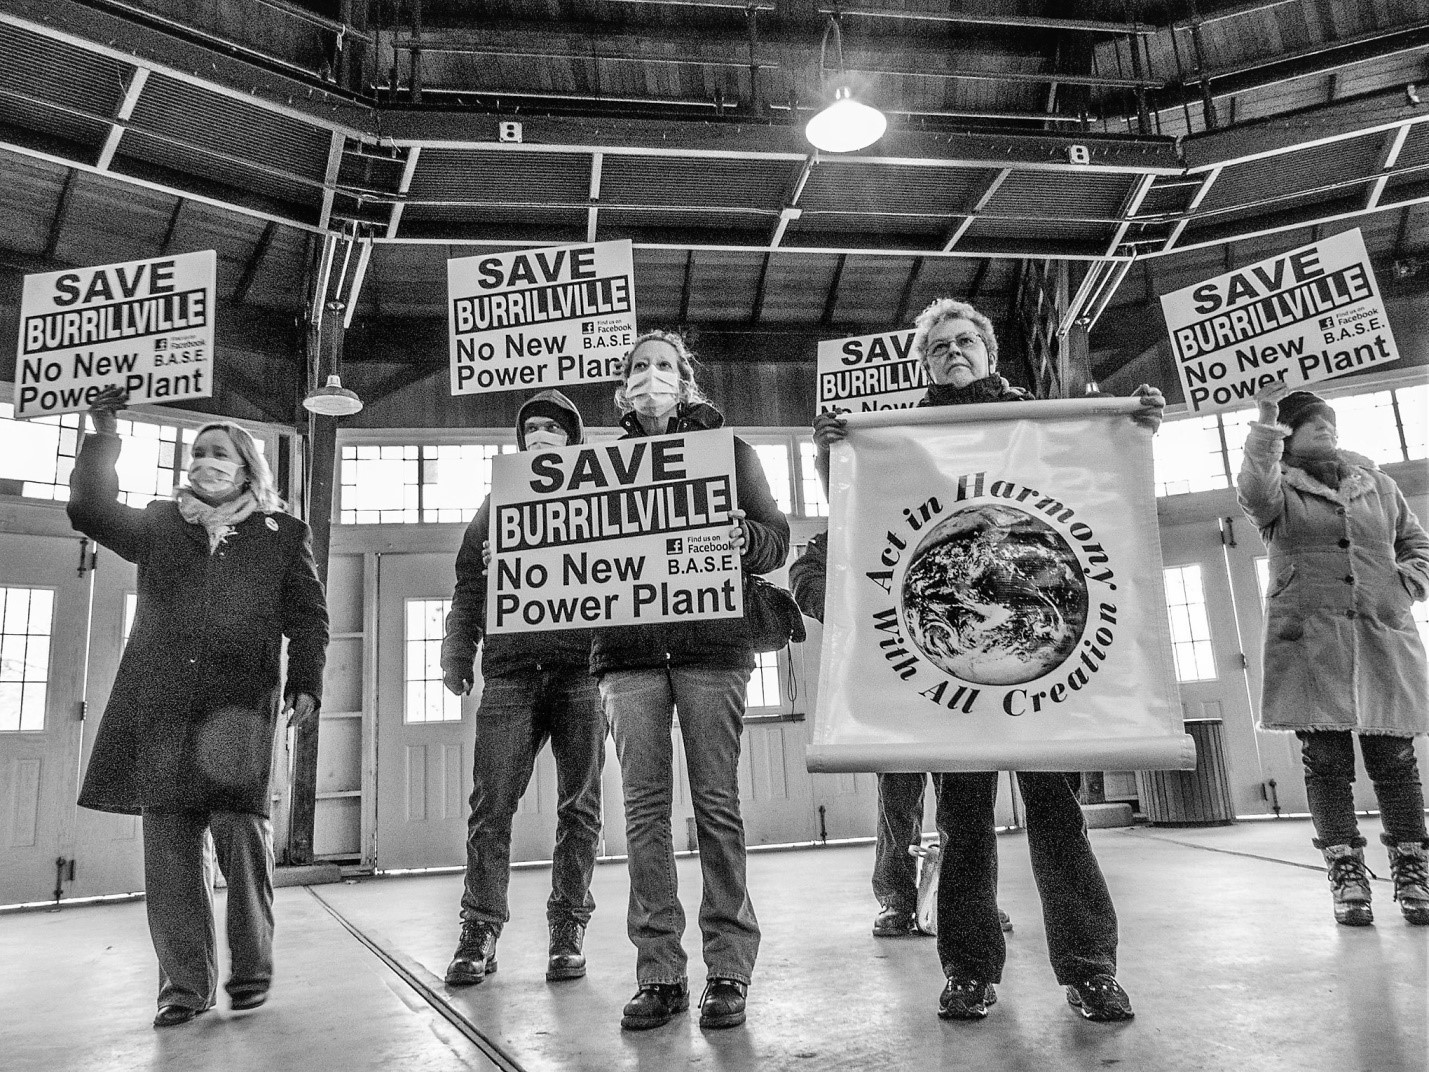 Judy Huegen, Nick Katkevitch. Kathy Martley, Sister Mary Pendergast and Sally Mendzela protest the building of a power plant in Burrillville, Rhode Island.